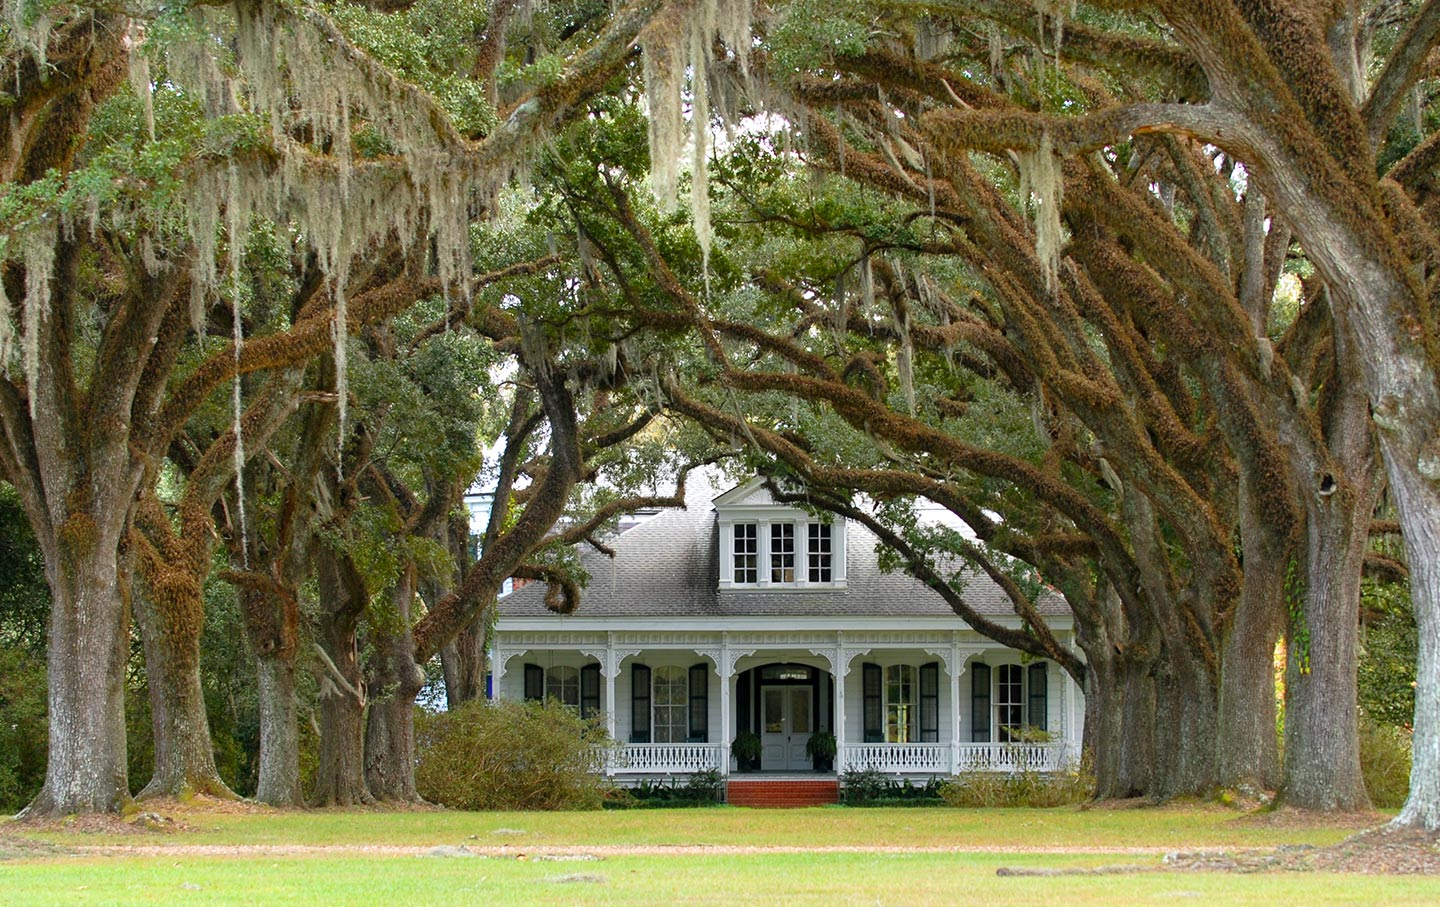 plantation-weddings-shutterstock-img